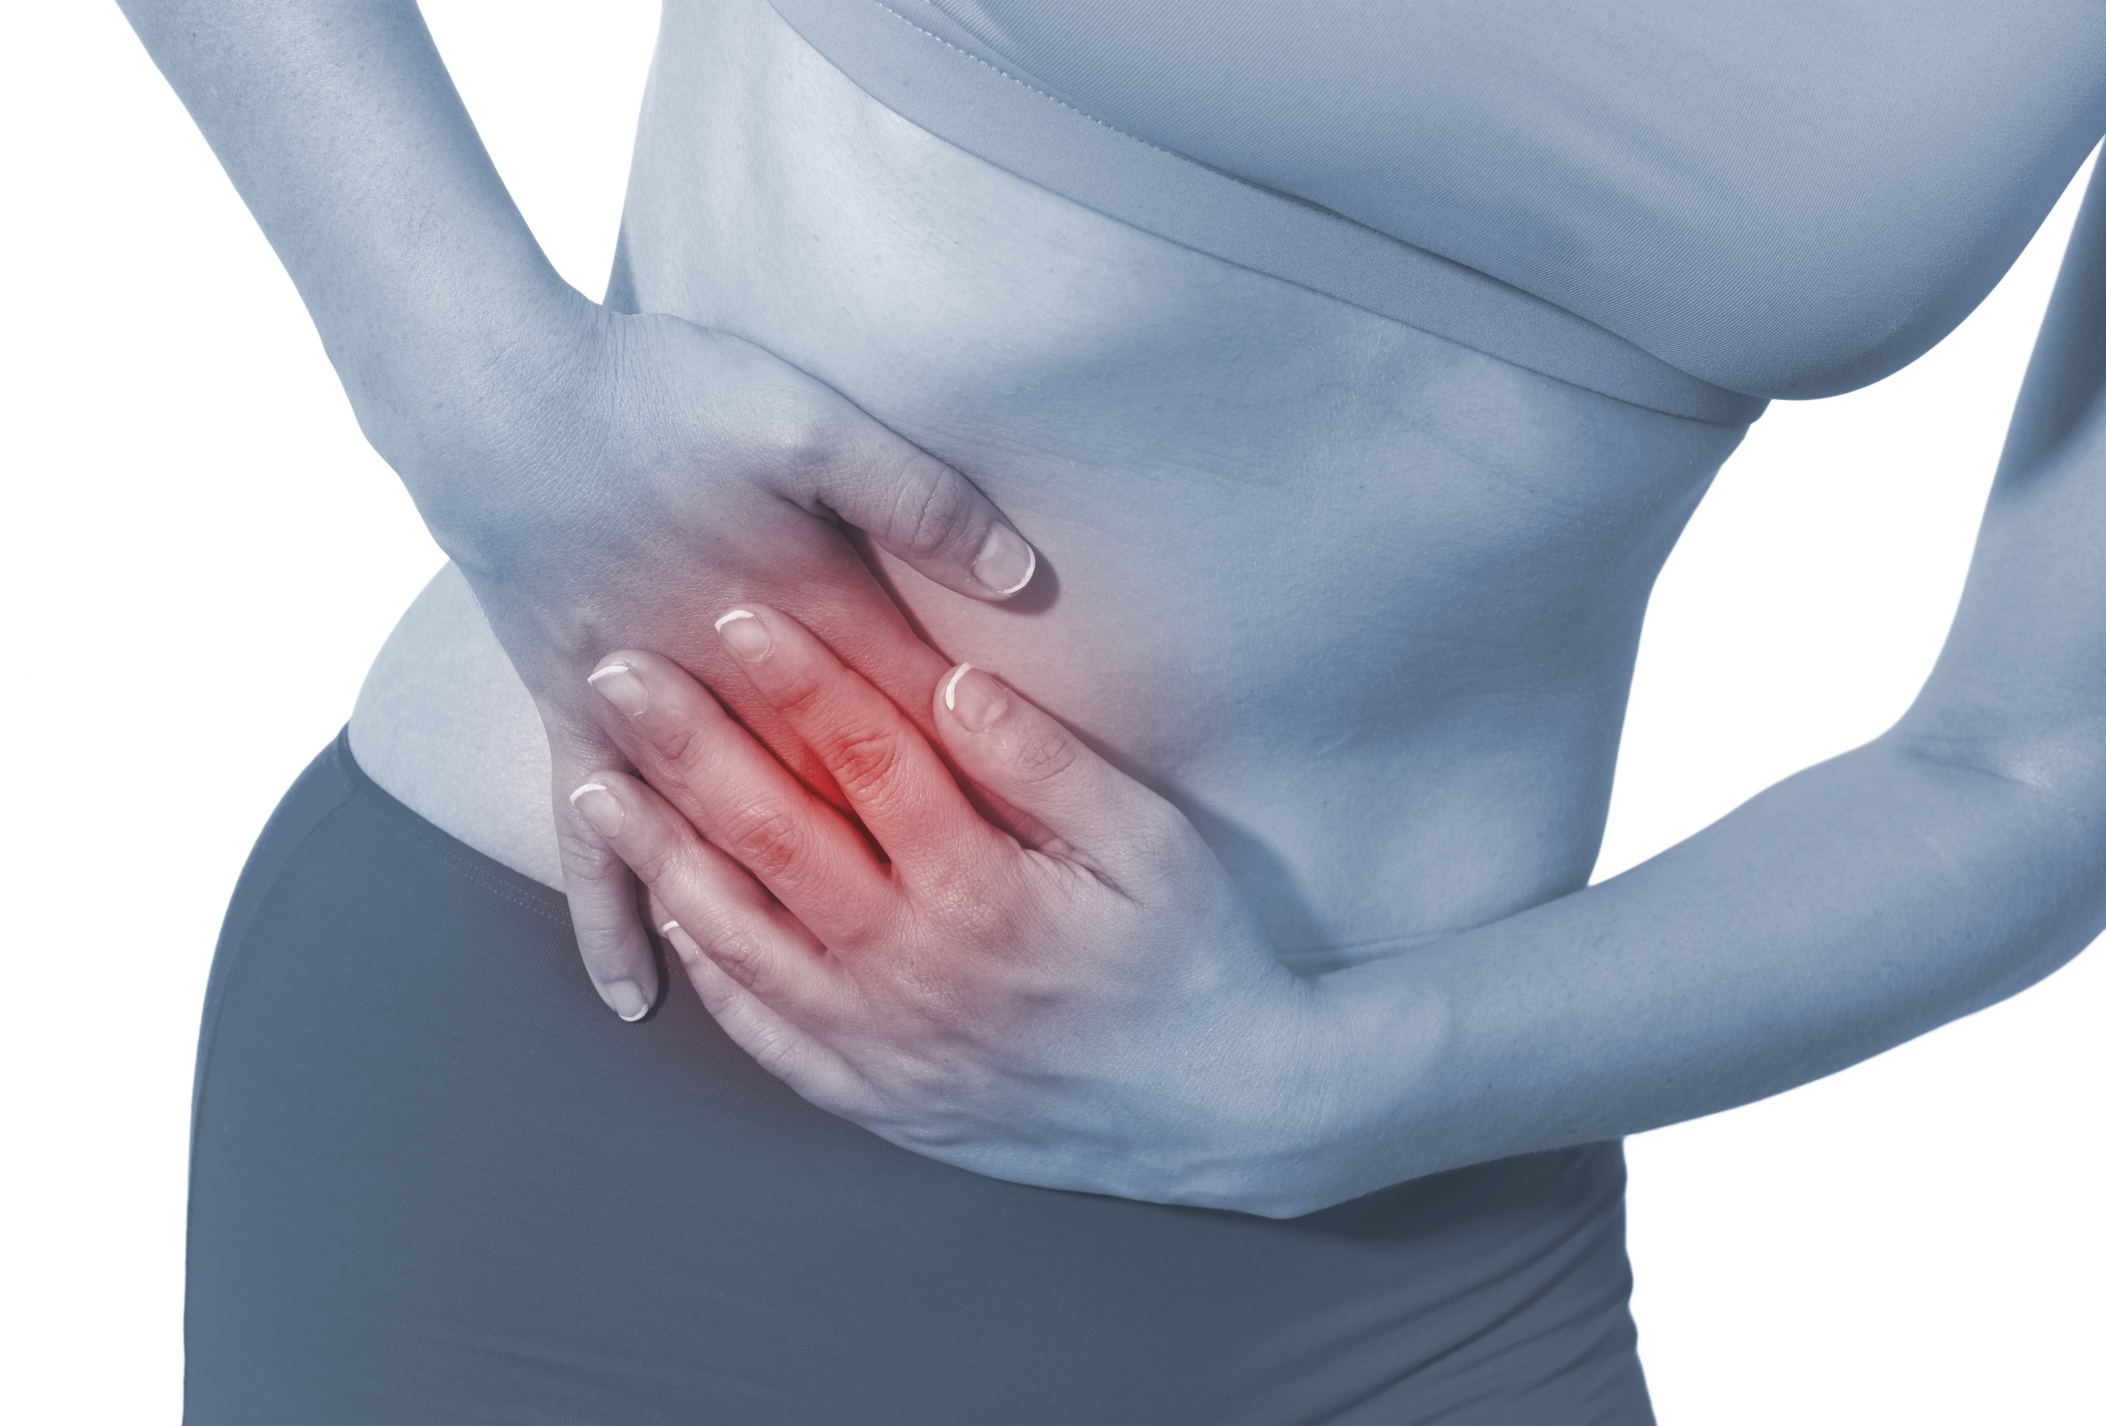 natural remedies for endometriosis